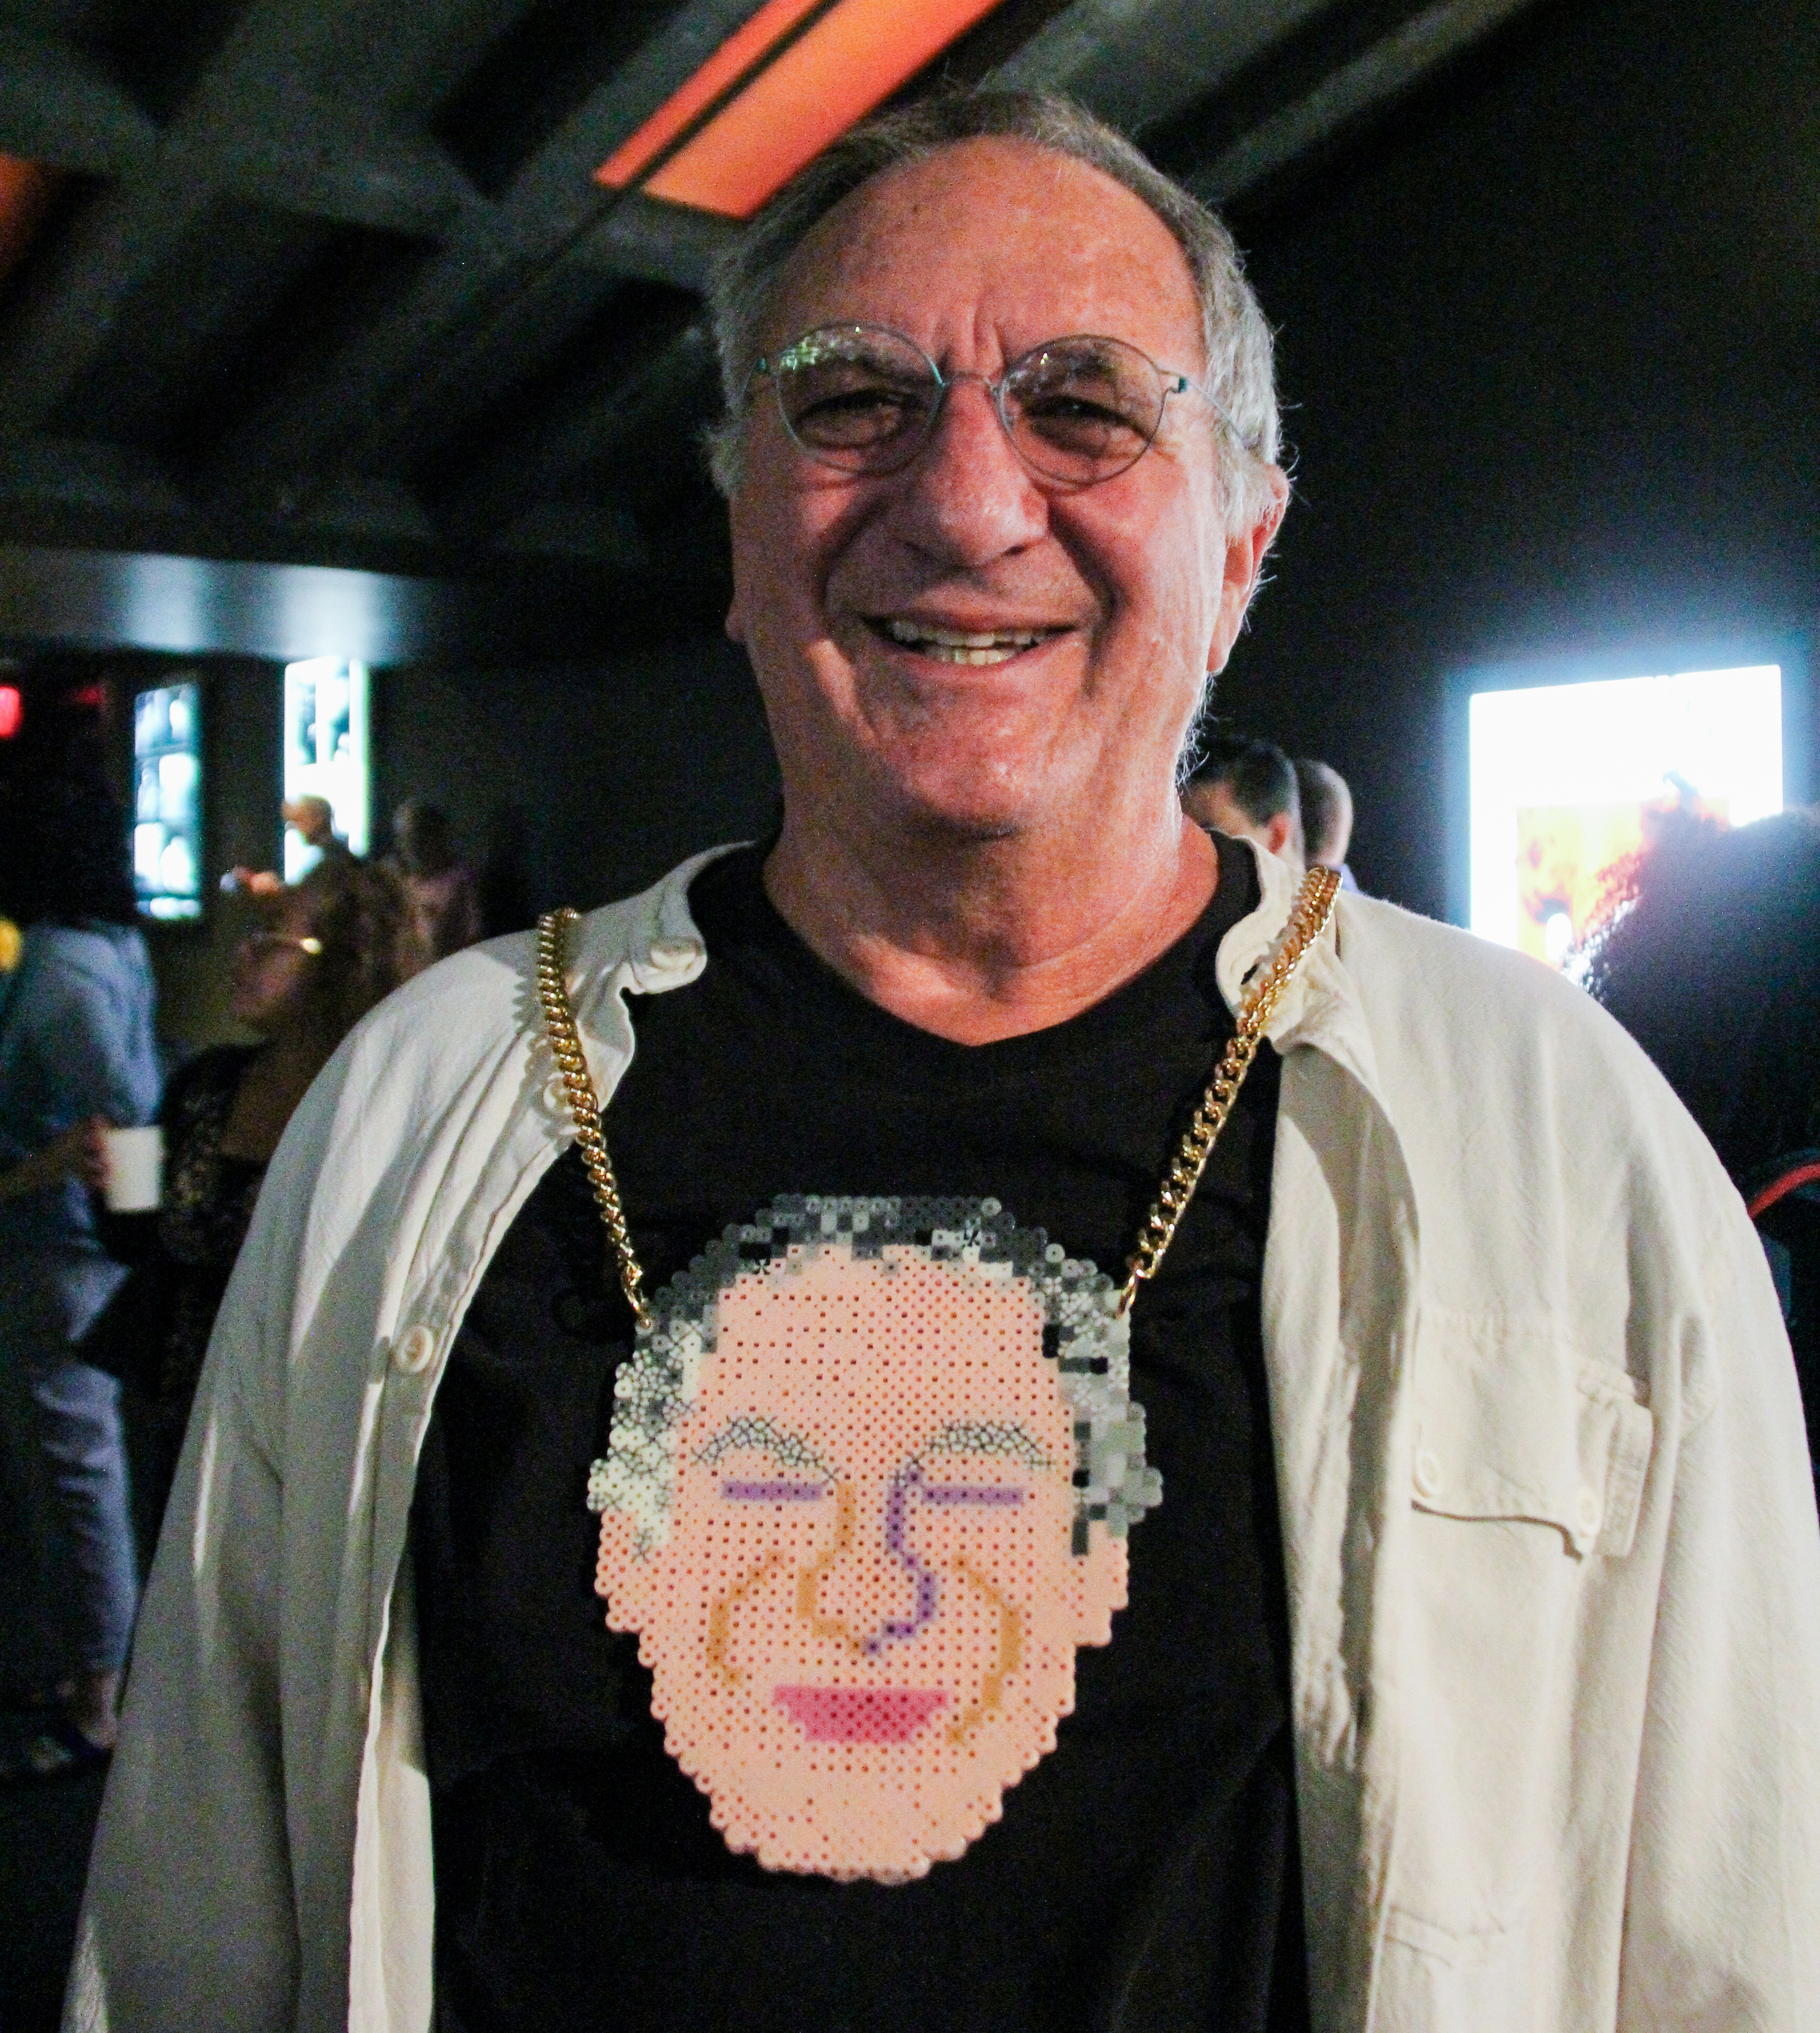 Richard Wilde smiles, wearing a chain with a pendant of his face made out of beads.